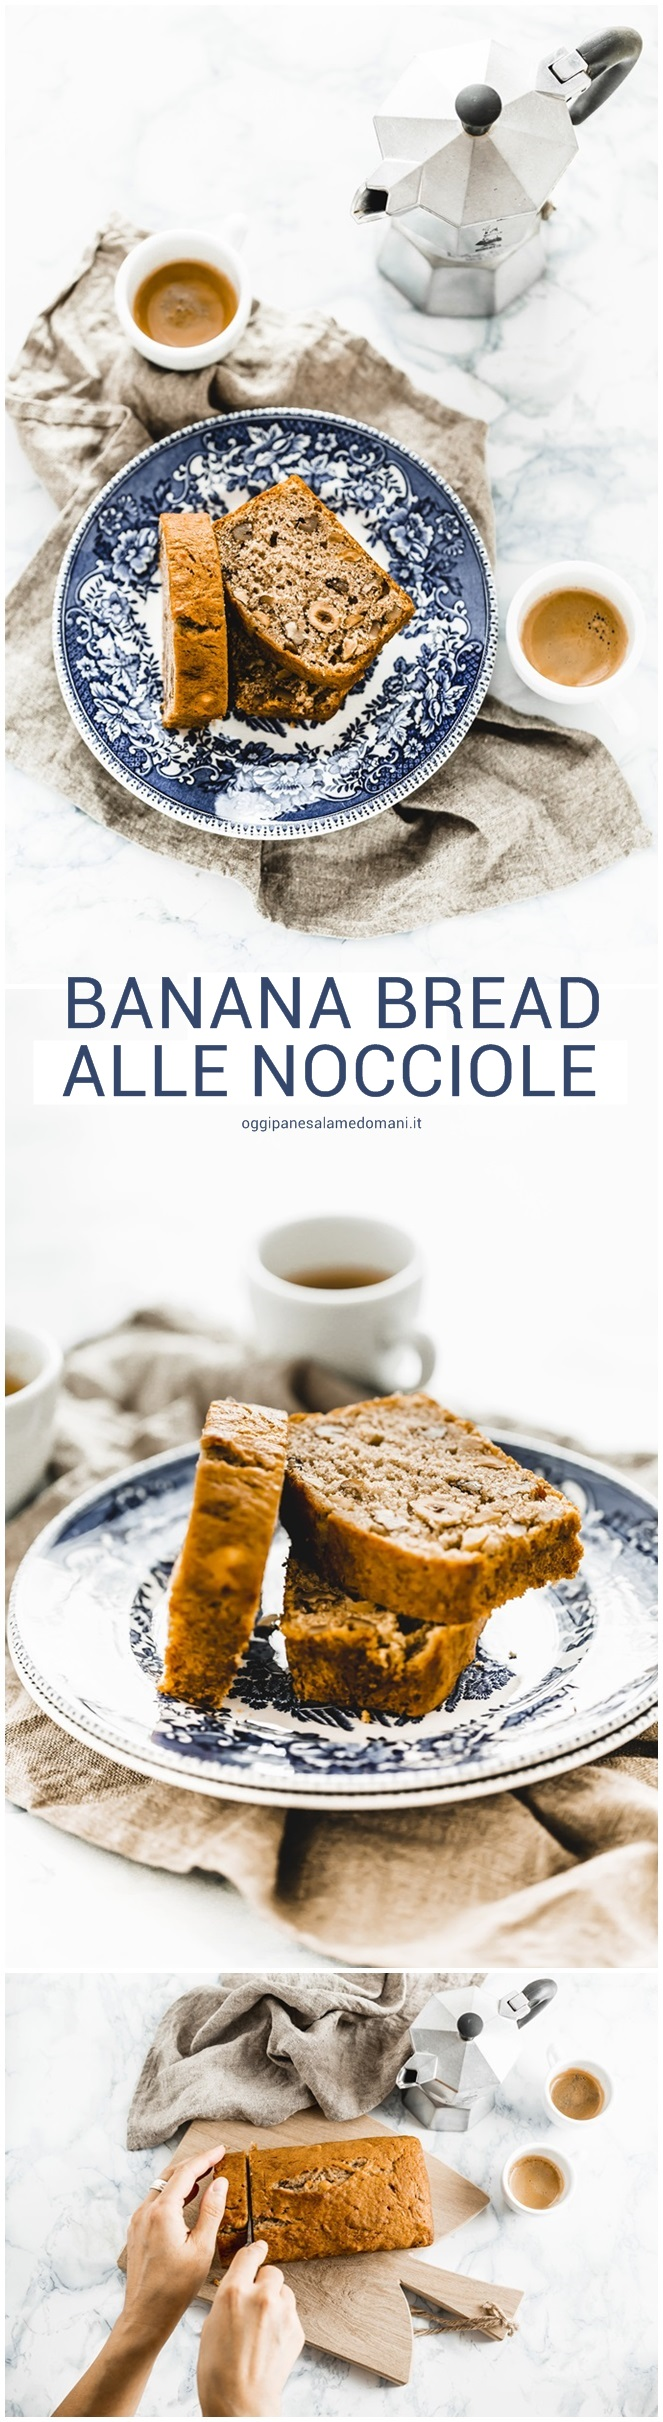 Banana bread alle nocciole   Recipe   Salame, Food styling and Food ...